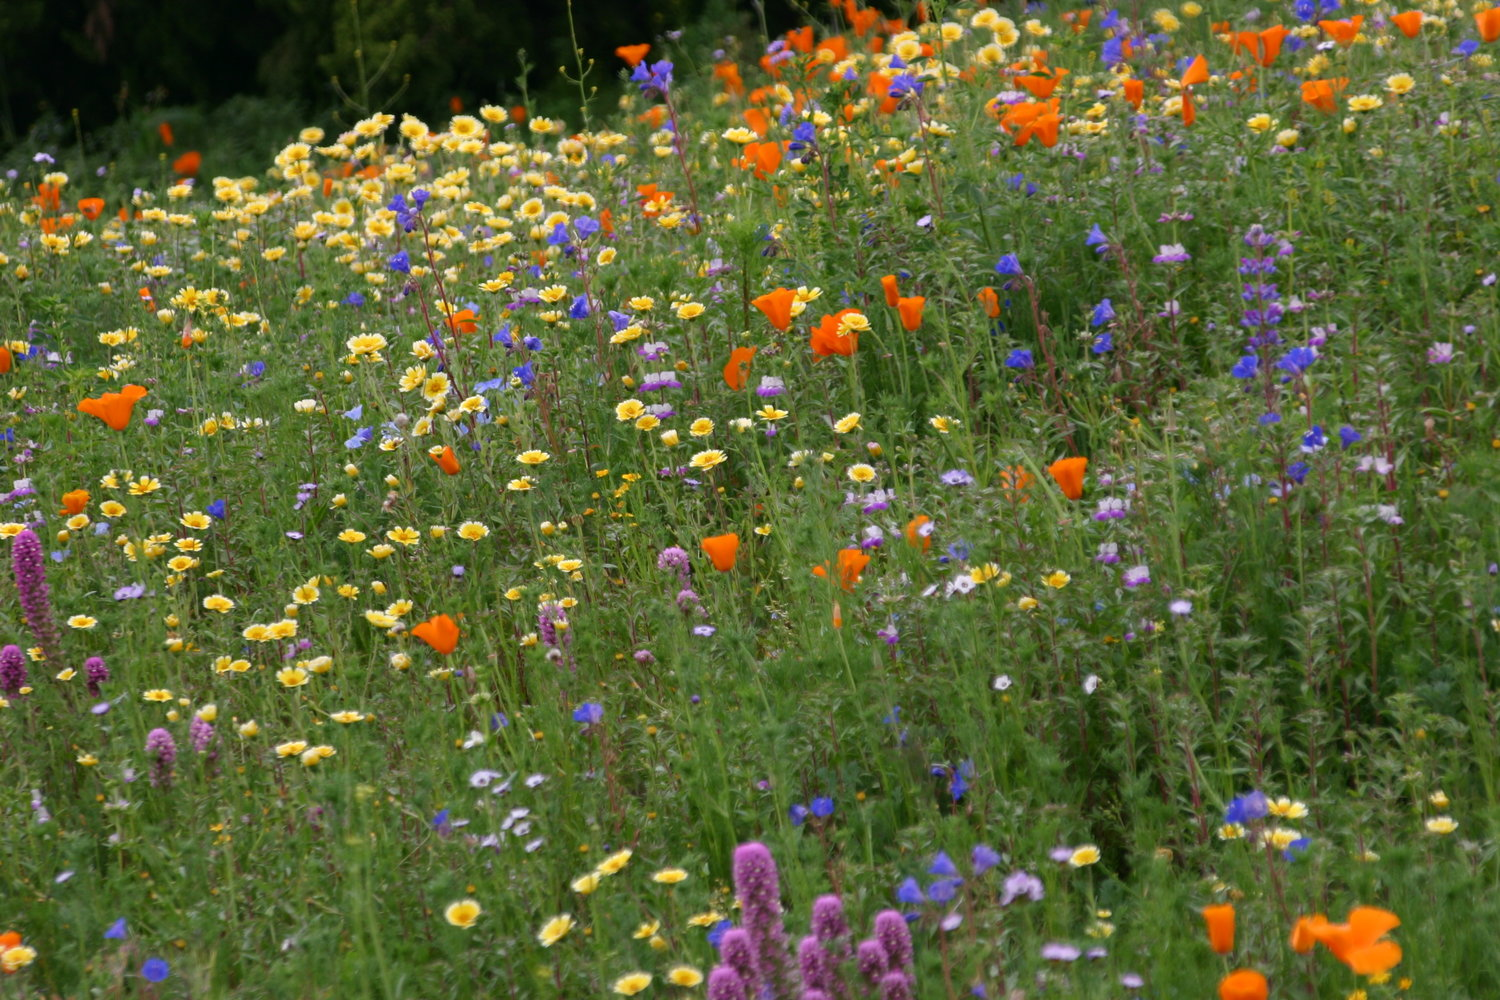 Seed was spread to create overlapping drifts of color, which is essential to maintain drama in such a large planting of wildflowers. Photo by Greg Rubin.